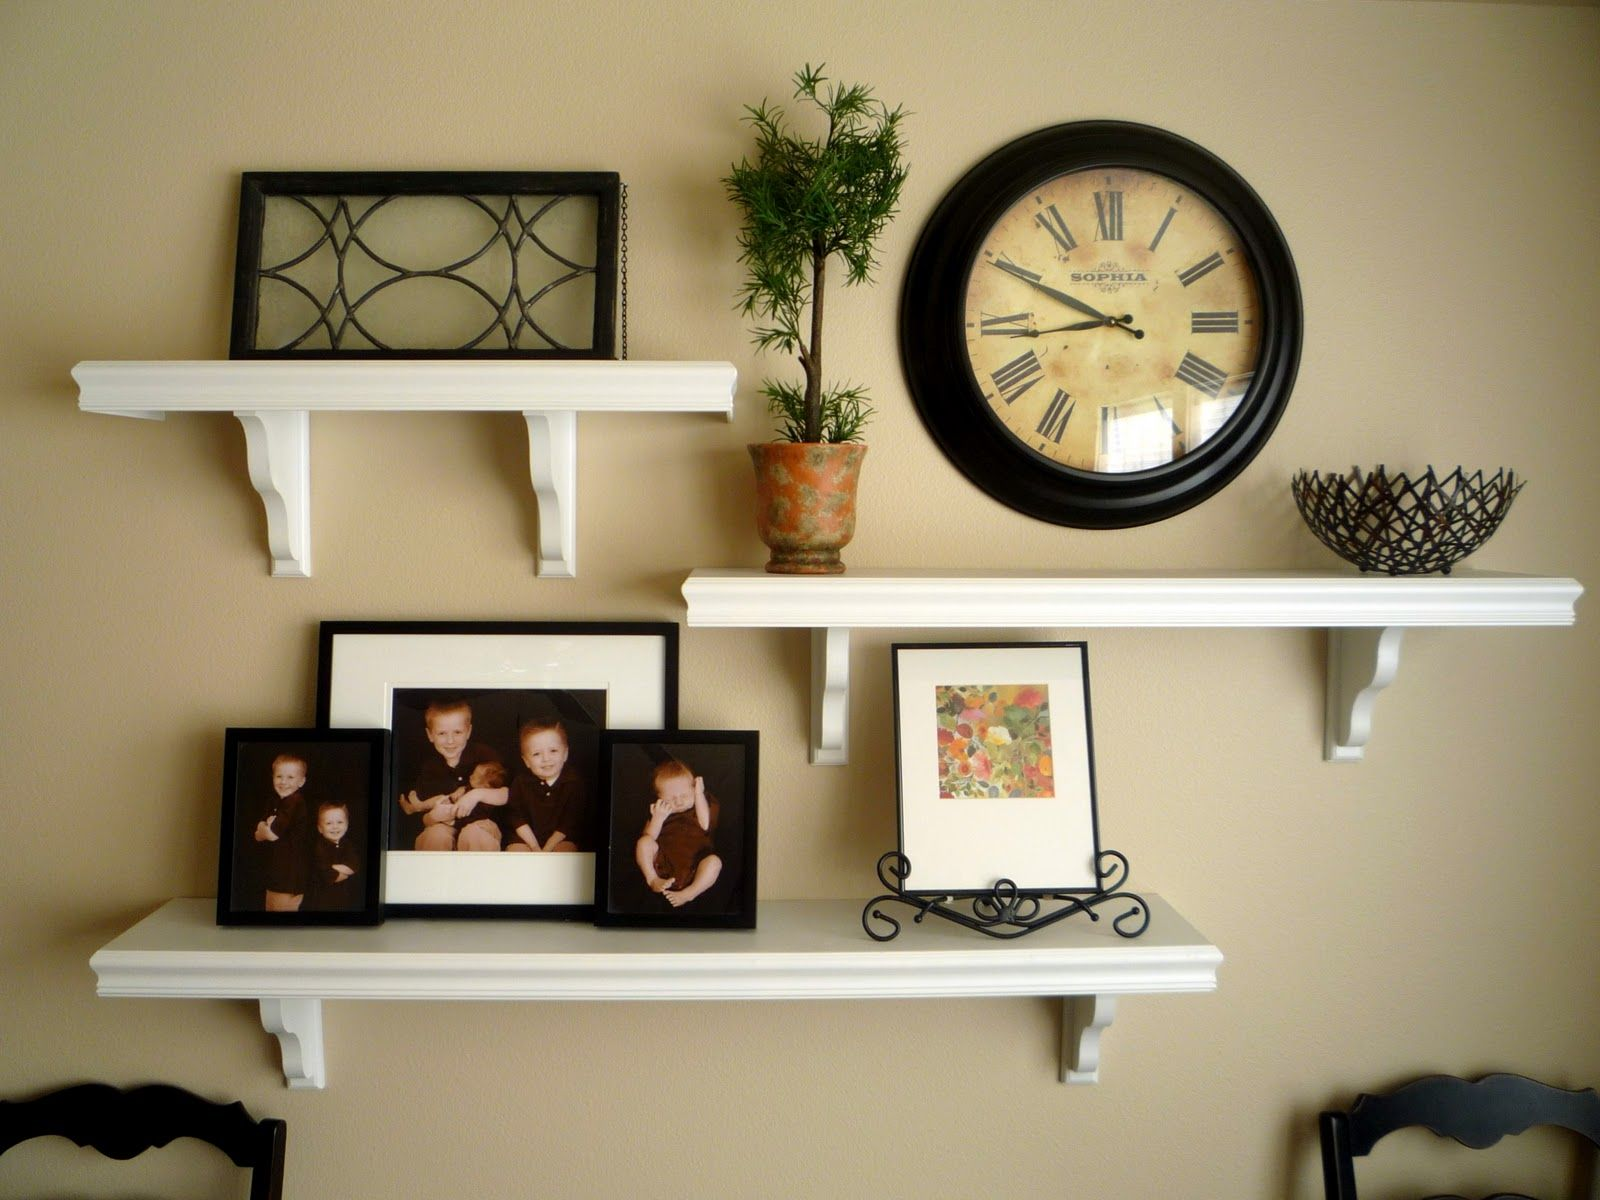 picture and shelves on wall together it all started after being inspired by thrifty decor - Decorating Ideas